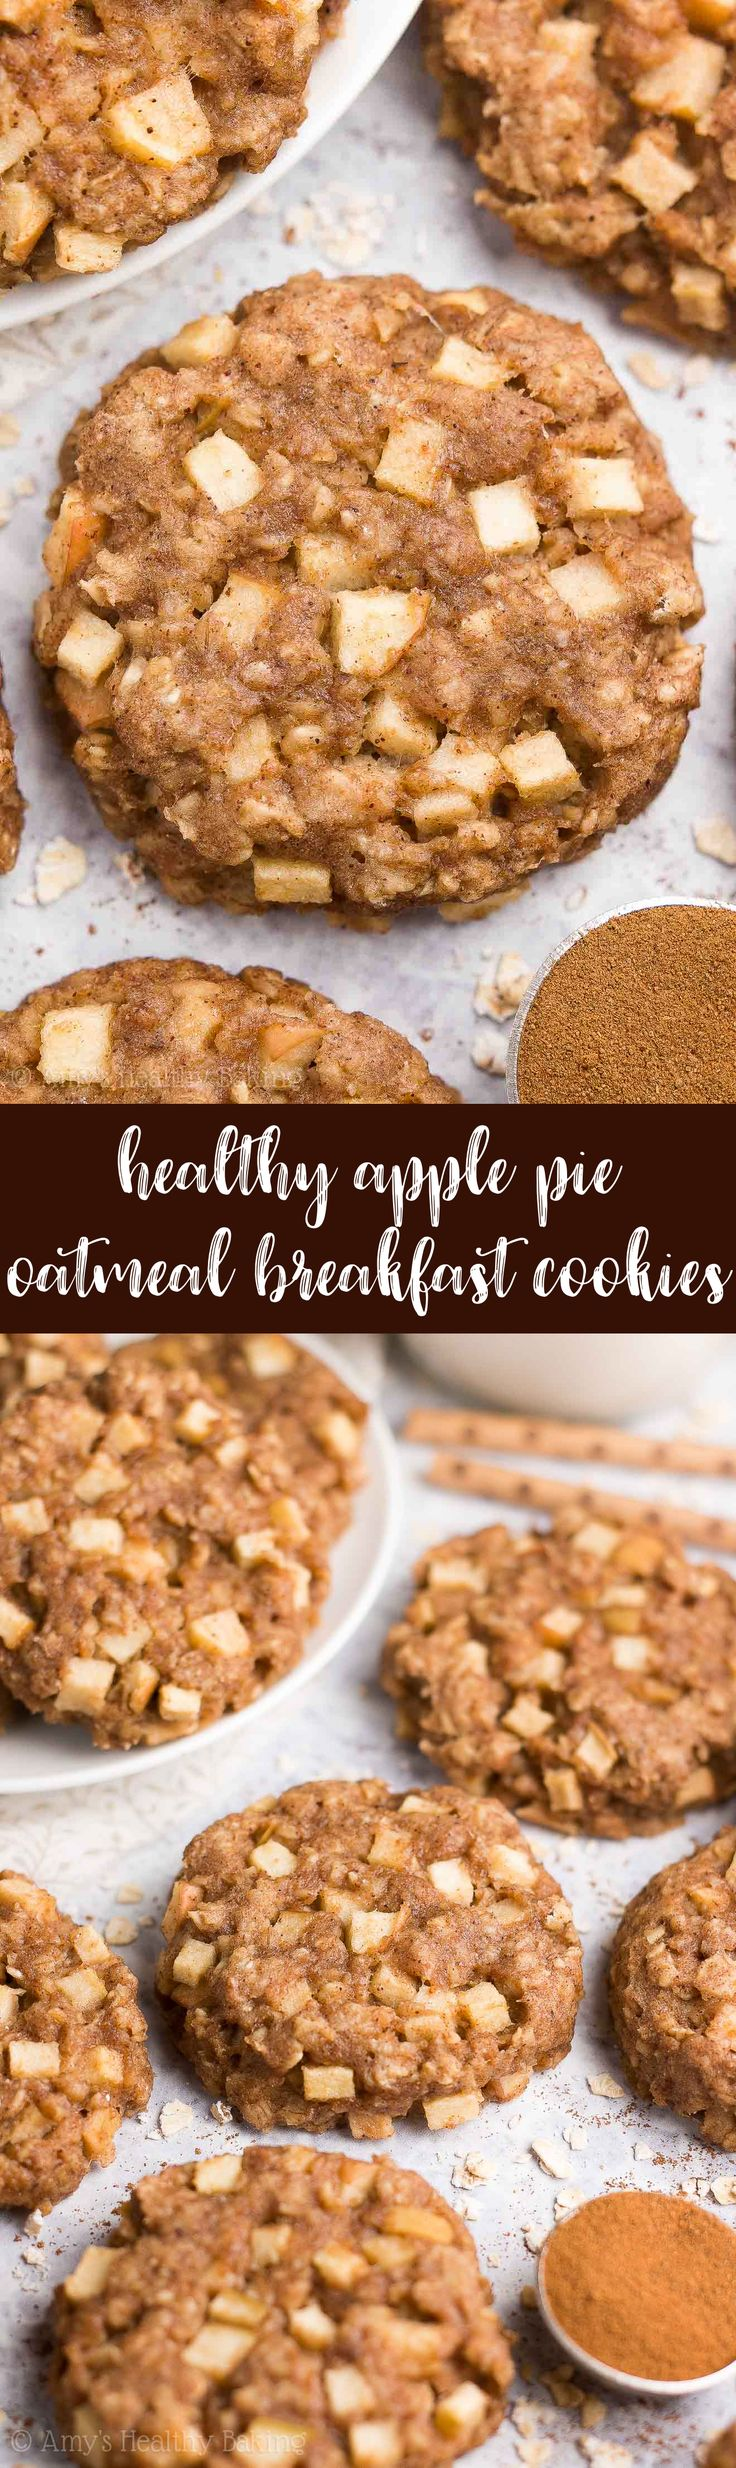 {HEALTHY!} Apple Pie Oatmeal Breakfast Cookies -- only 71 calories! Soft, chewy & so easy to make! They're perfect for kids & quick grab-and-go breakfasts! (And they freeze well too!) AD | healthy breakfast cookies | breakfast cookies for kids | easy healthy breakfast cookies | clean eating breakfast cookies